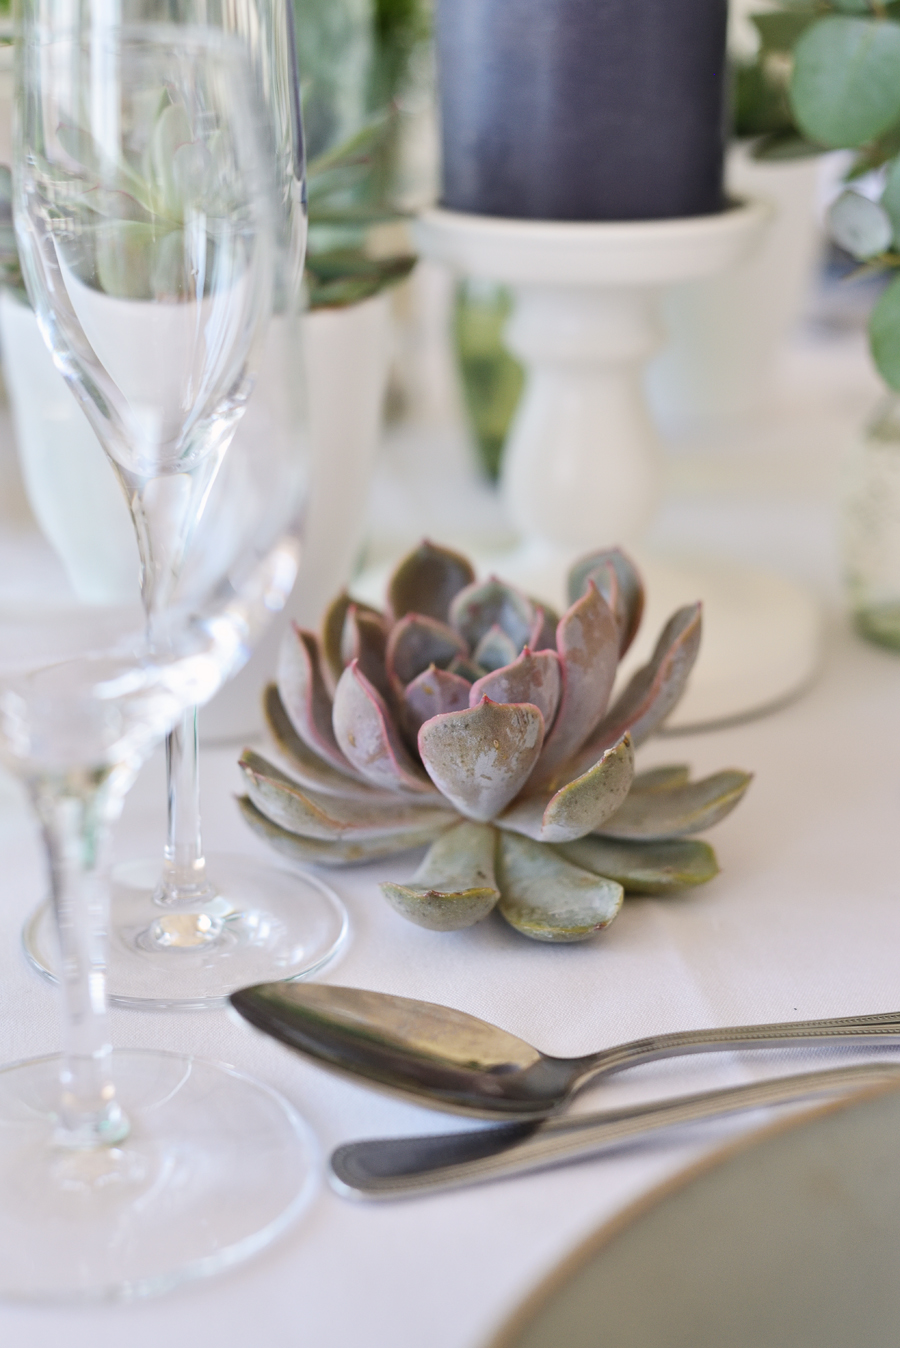 Marina Walker Photography's styled shoot with succulents and affordable details for a minimalist boho wedding (11)